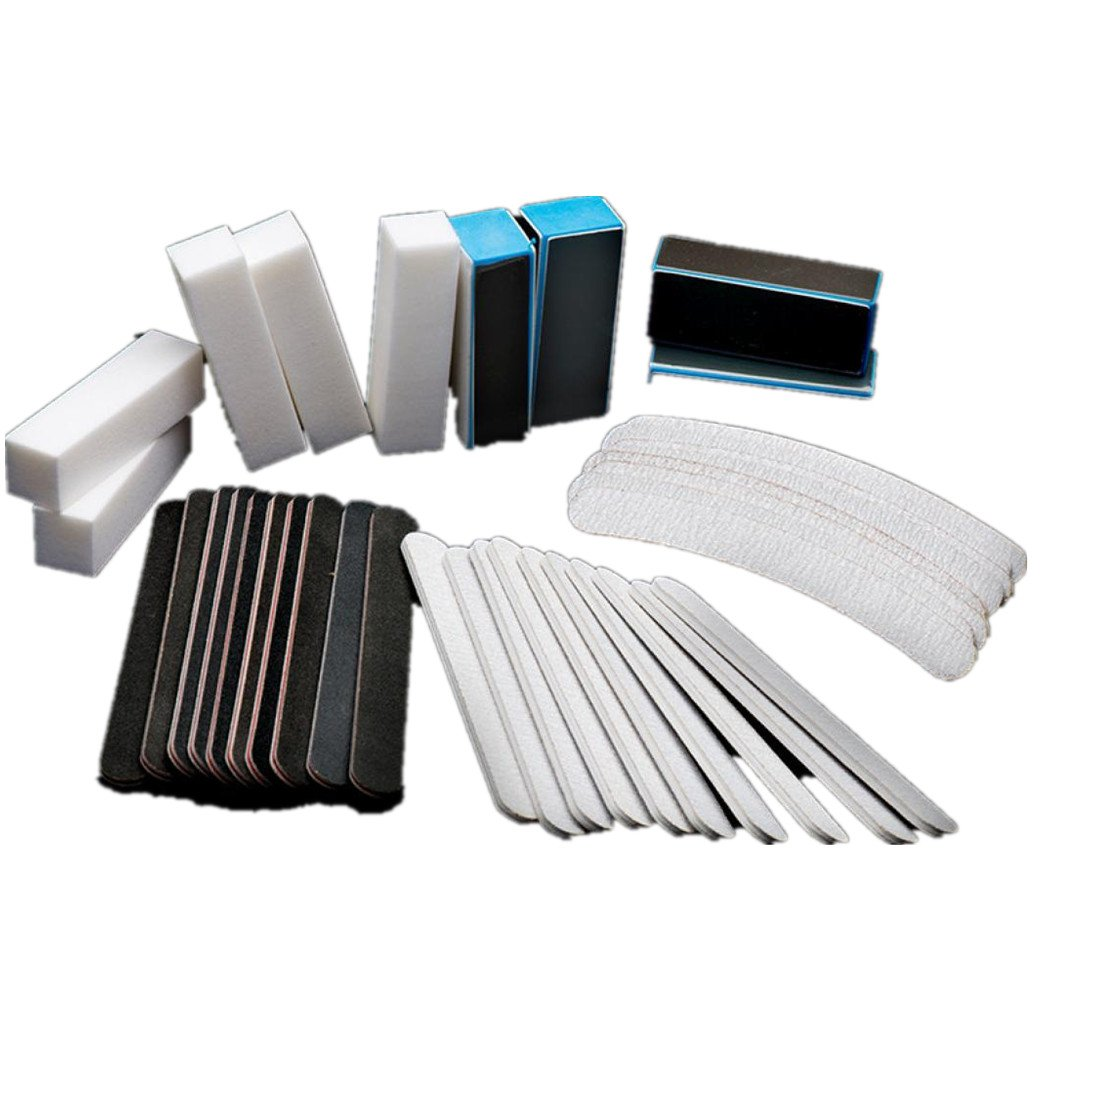 Nail Art Tools Kit Set, 40PCS Kingfansion Nail Art Sanding Files Buffer Block Manicure Tools Pedicure UV Gel Set